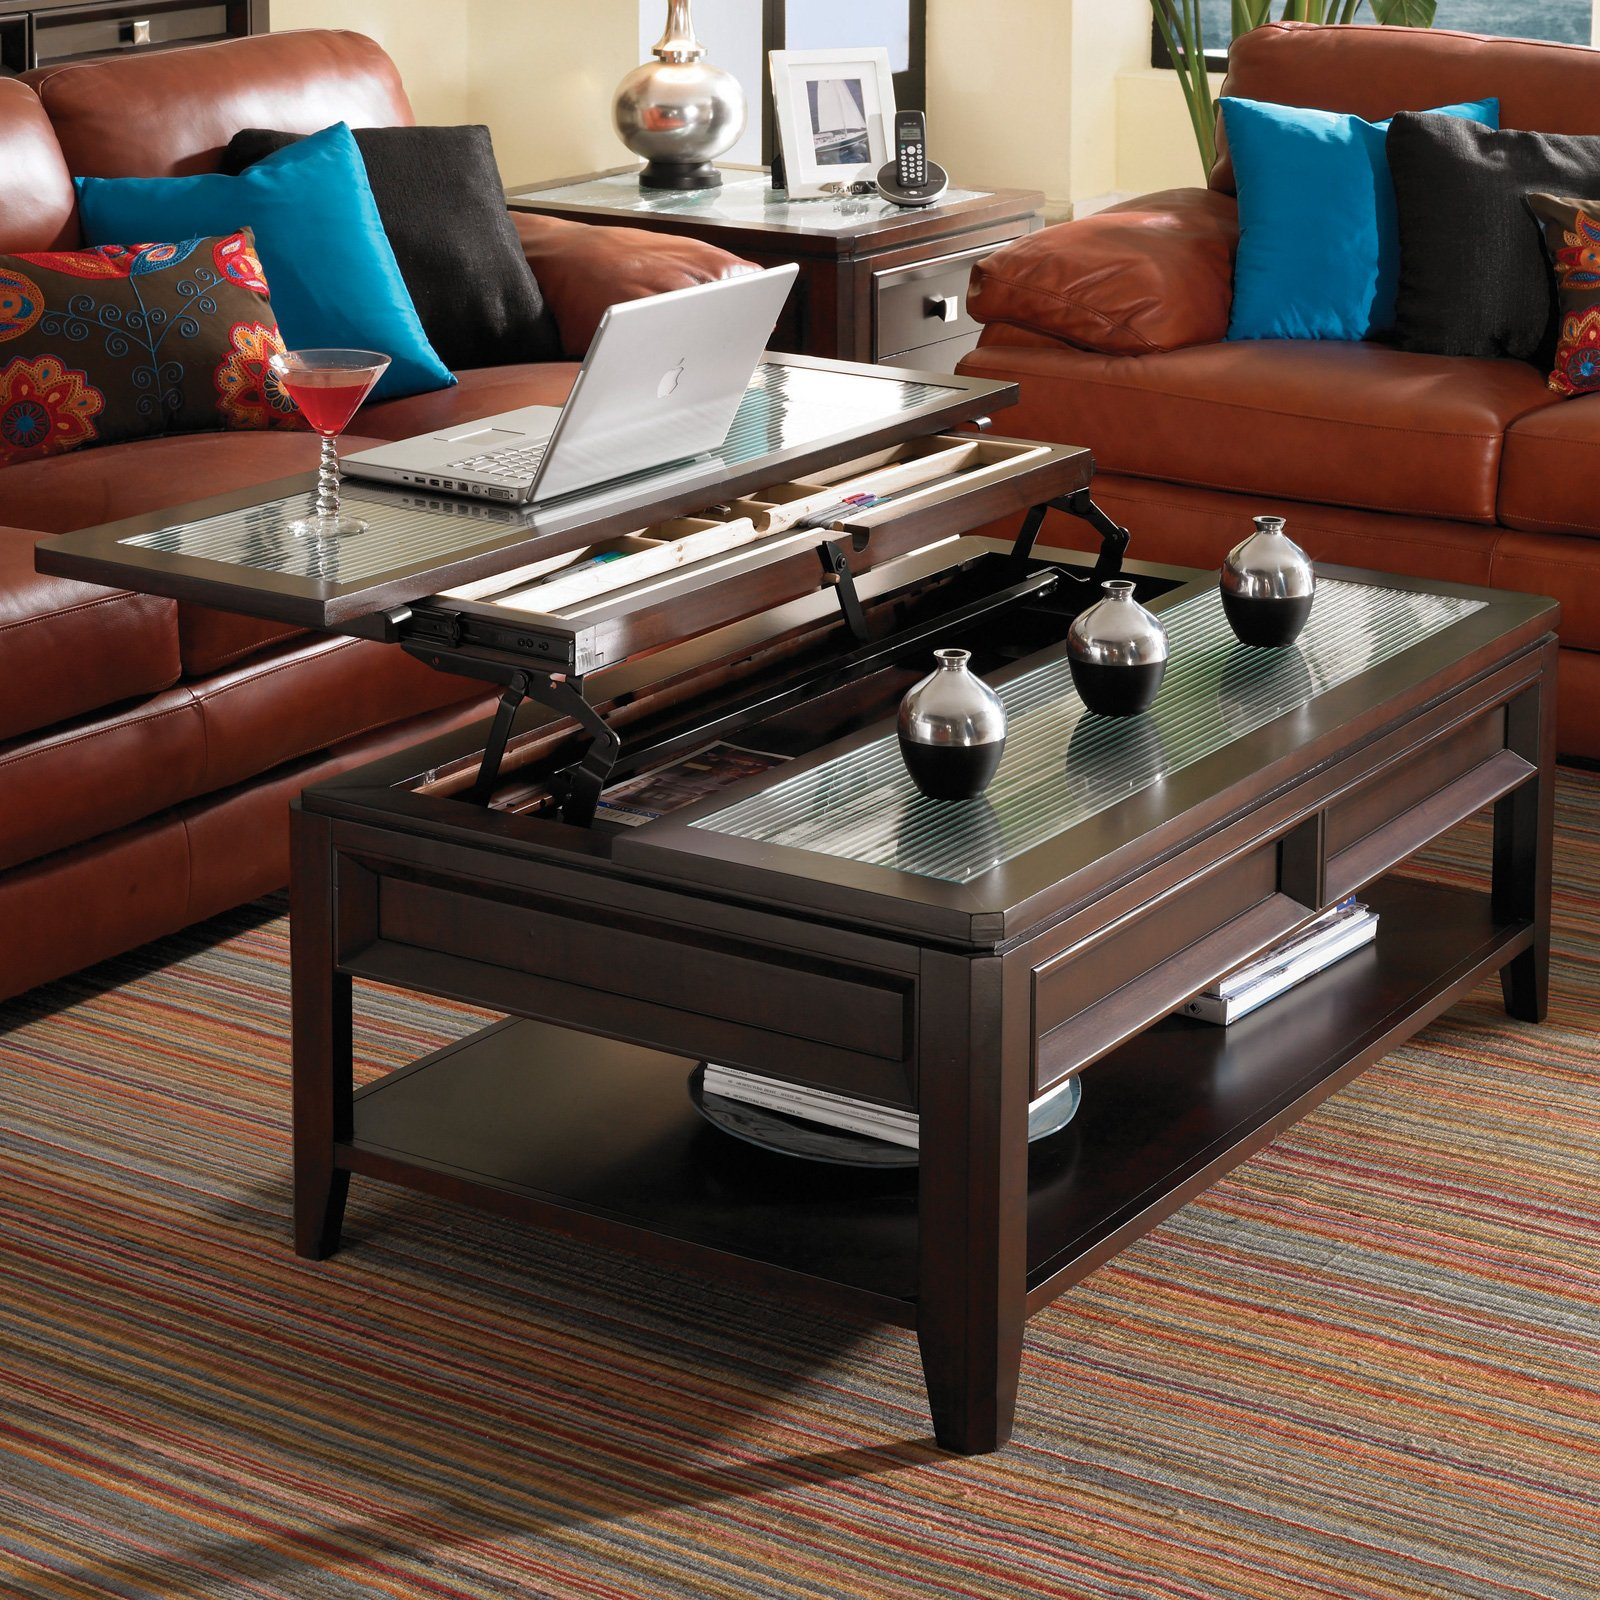 10 photos glass lift top coffee tables glass lift top coffee table beautiful interior furniture geotapseo Image collections